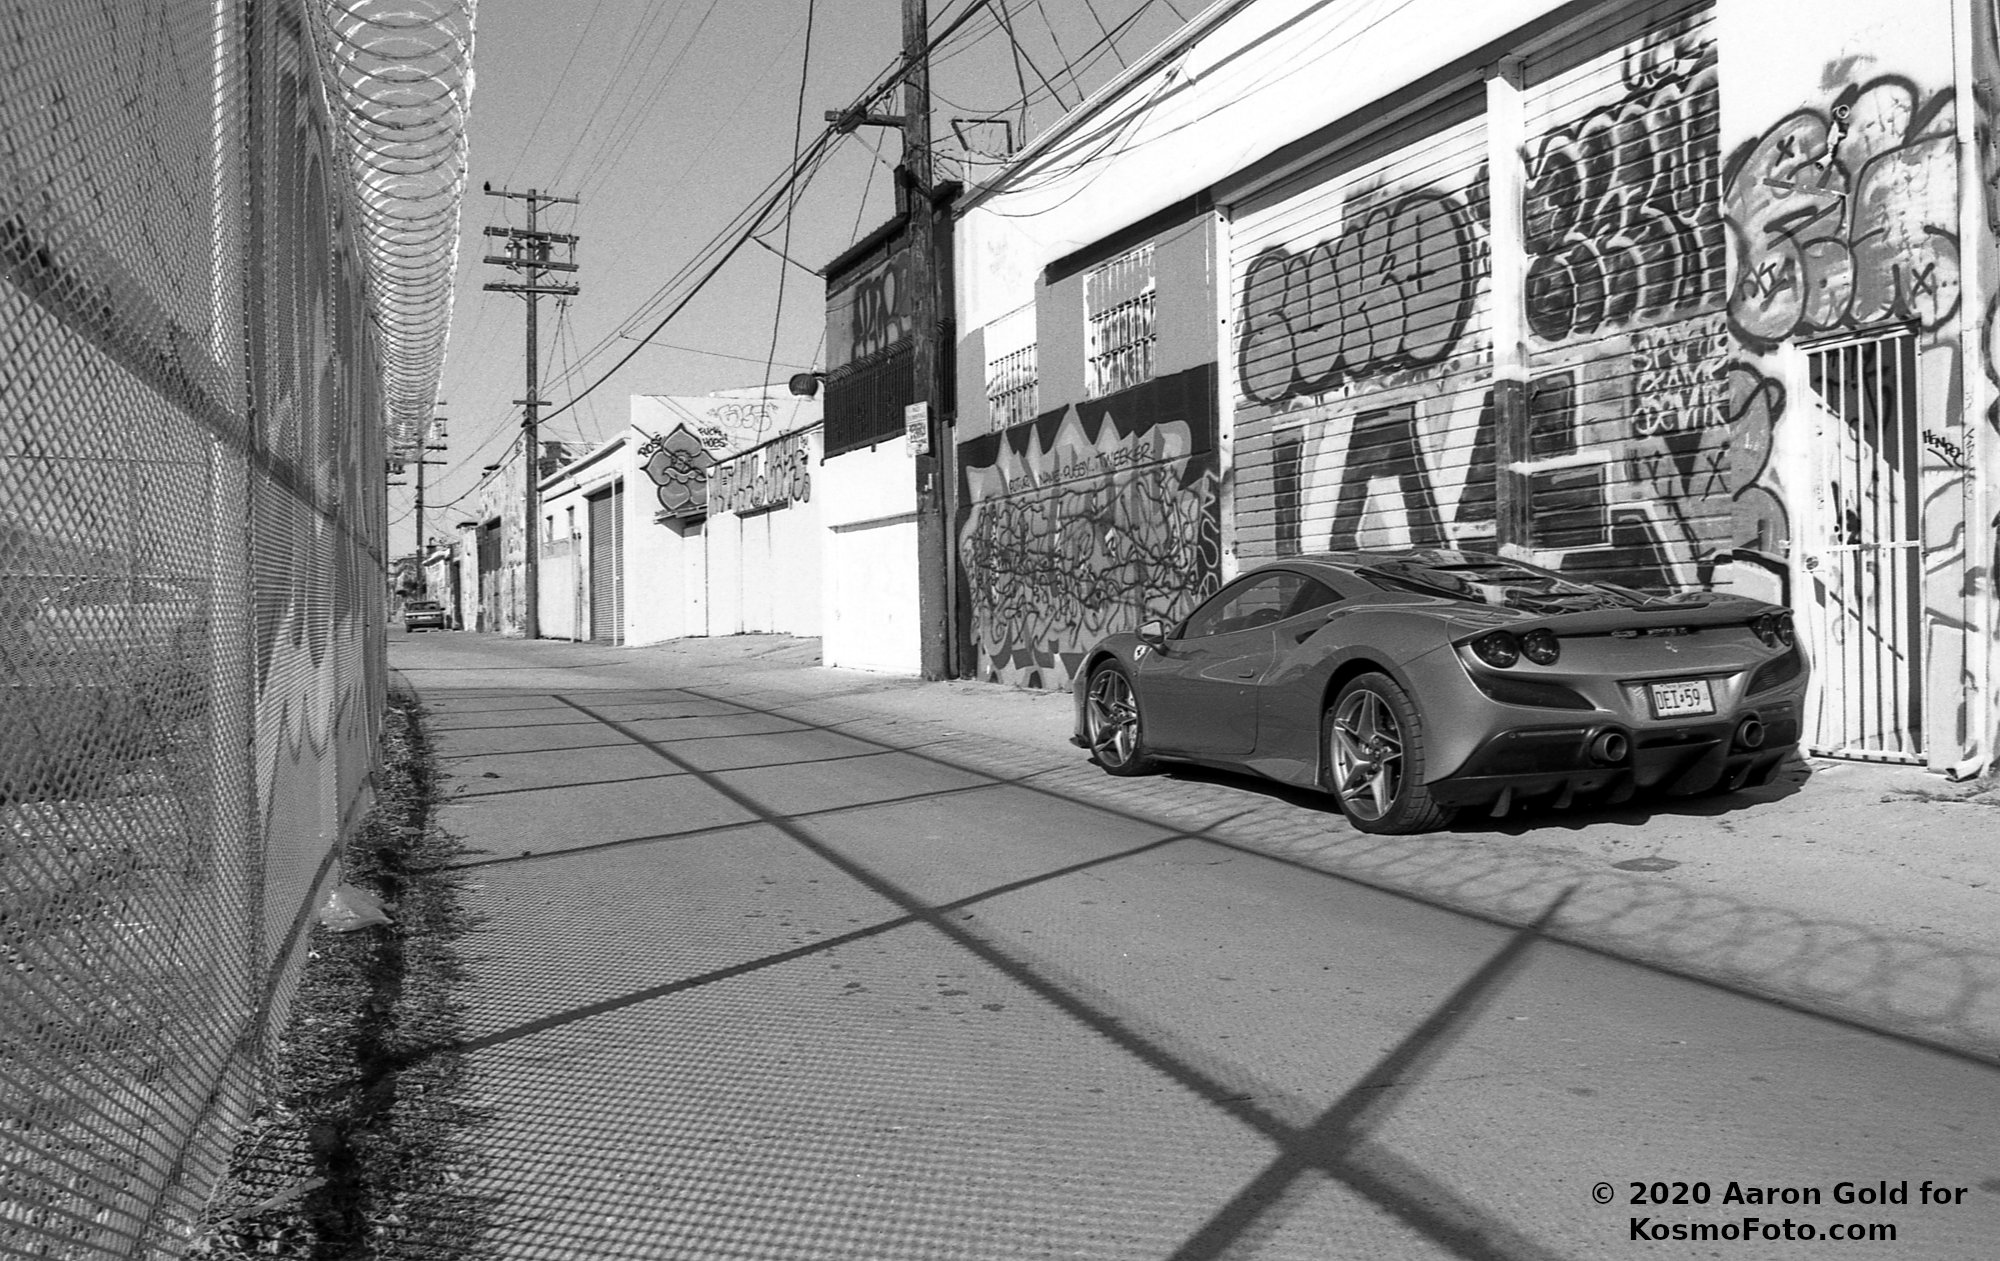 Sports car on empty street (Pic: Aaron Gold)